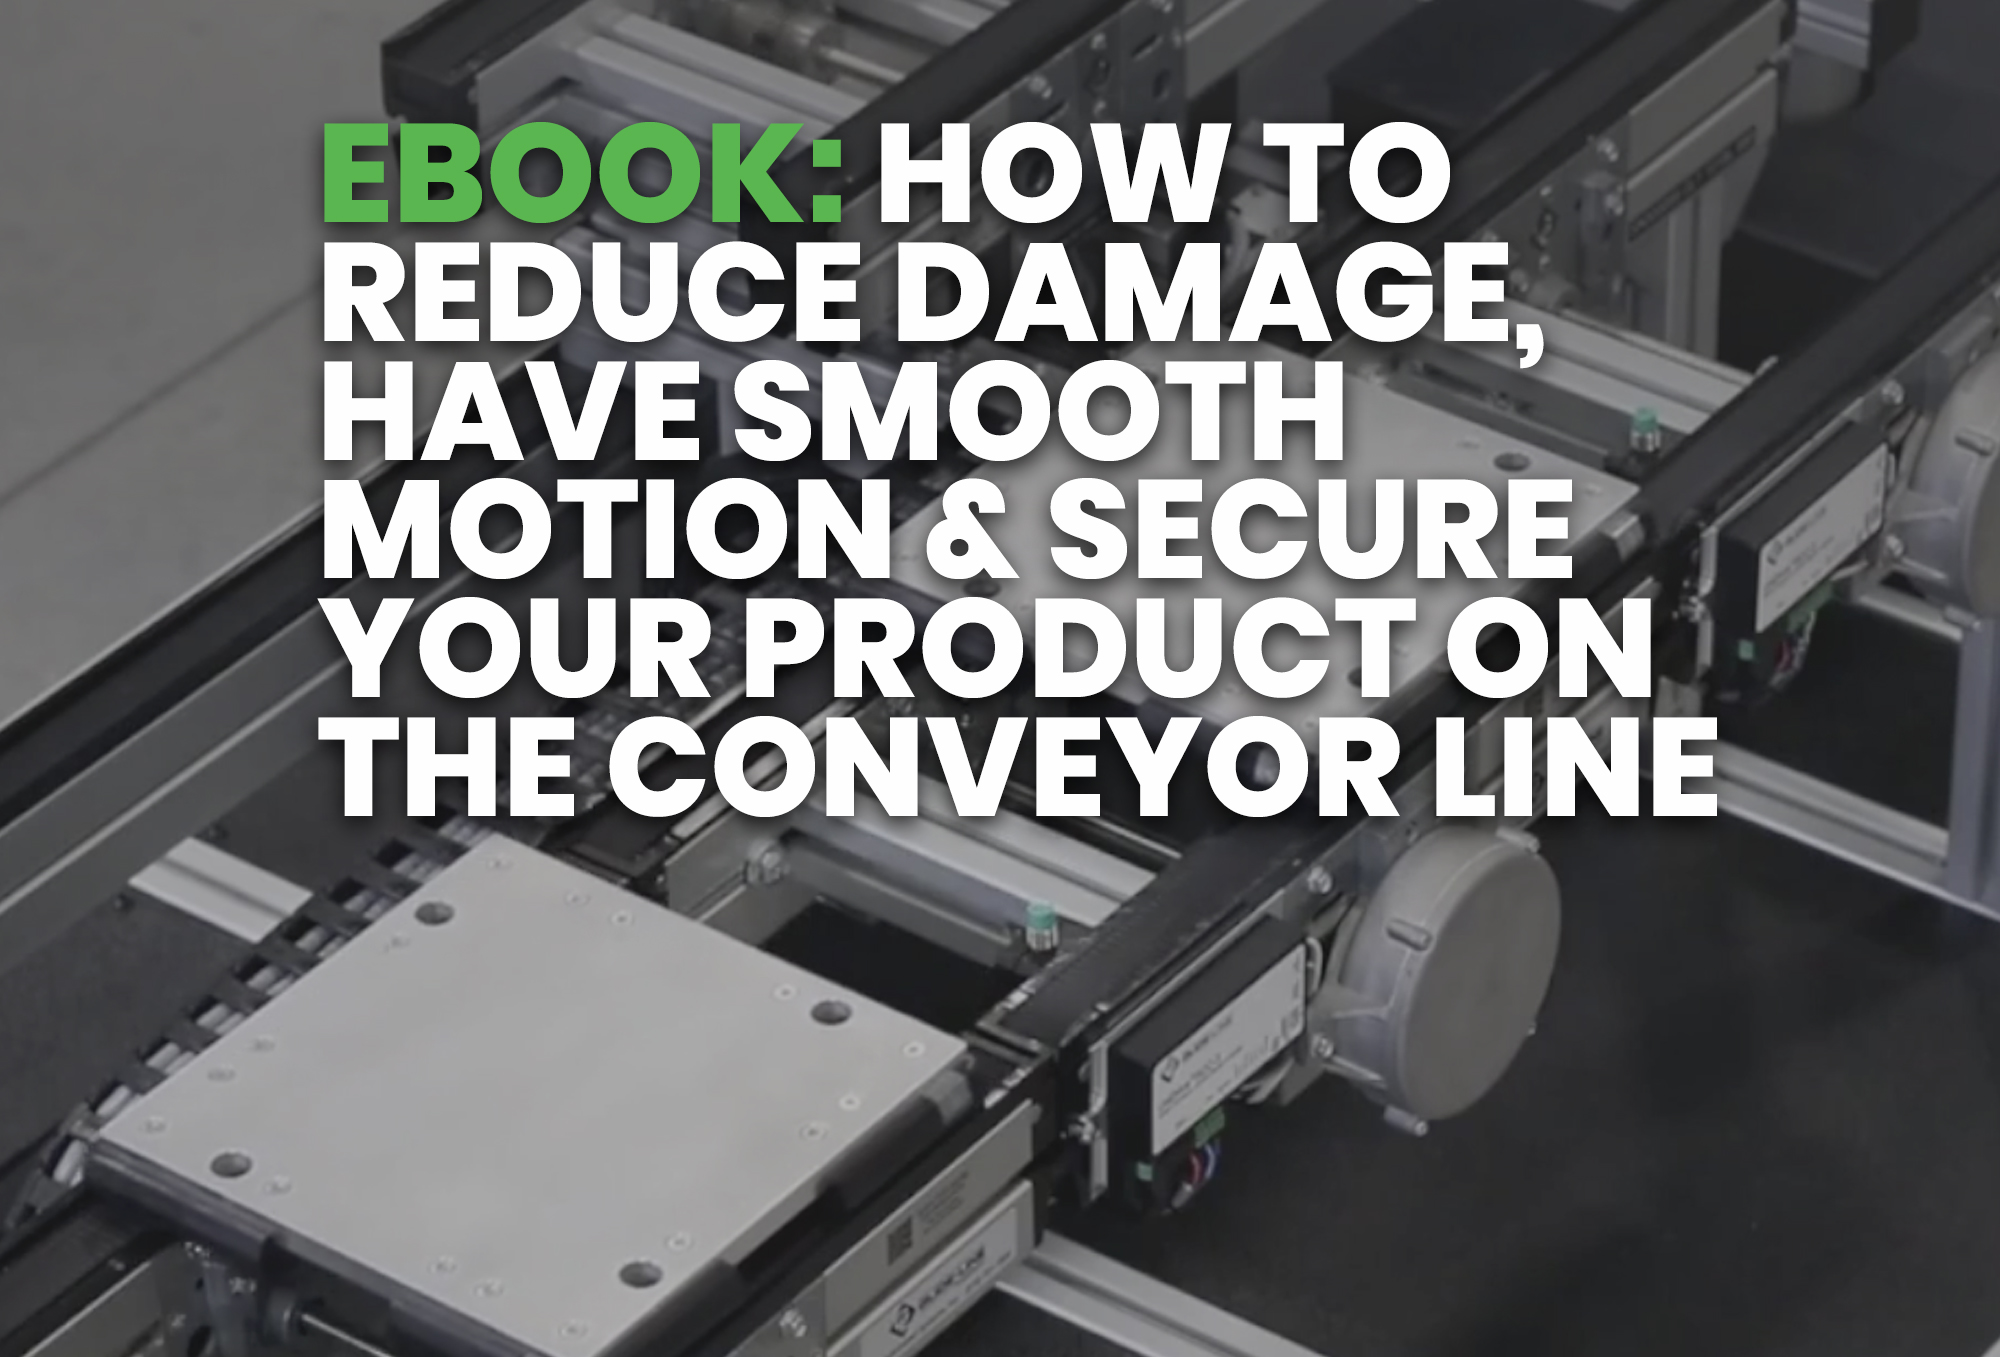 ebook- How To Reduce Damage, Have Smooth Motion & Secure Your Product On The Conveyor Line